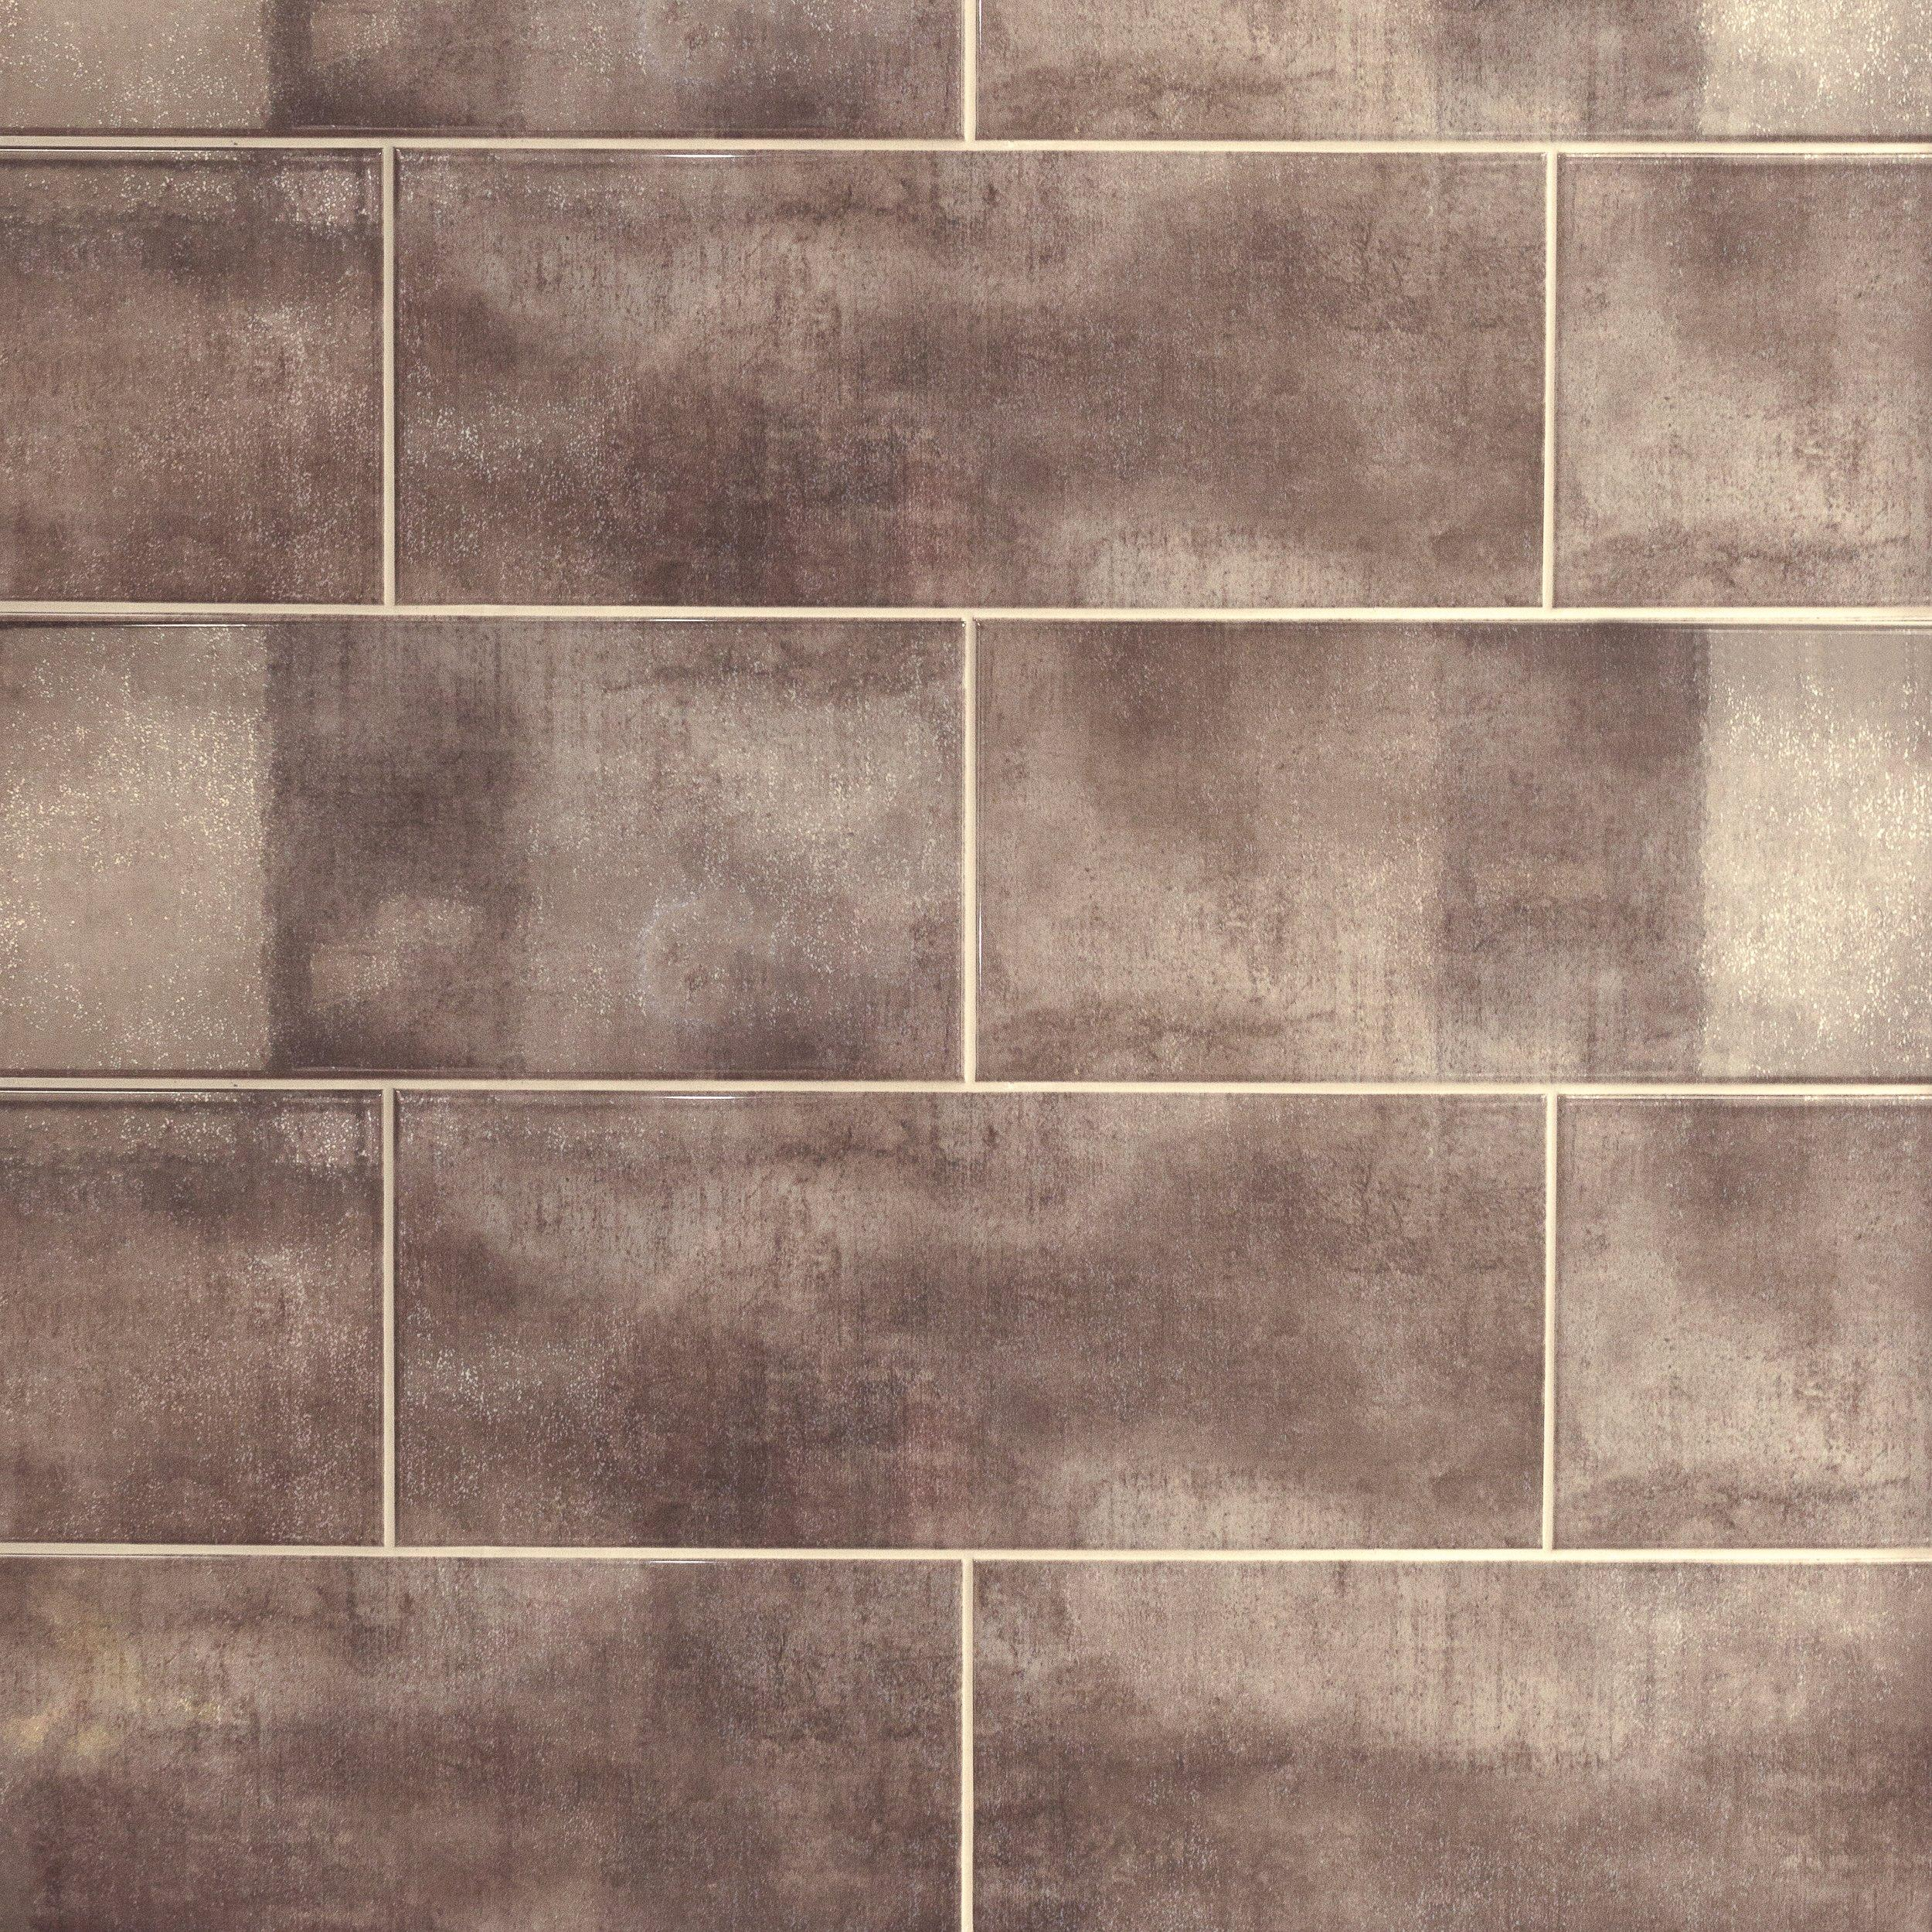 Pewter gray ceramic tile 8 x 20 100138189 floor and decor dailygadgetfo Image collections